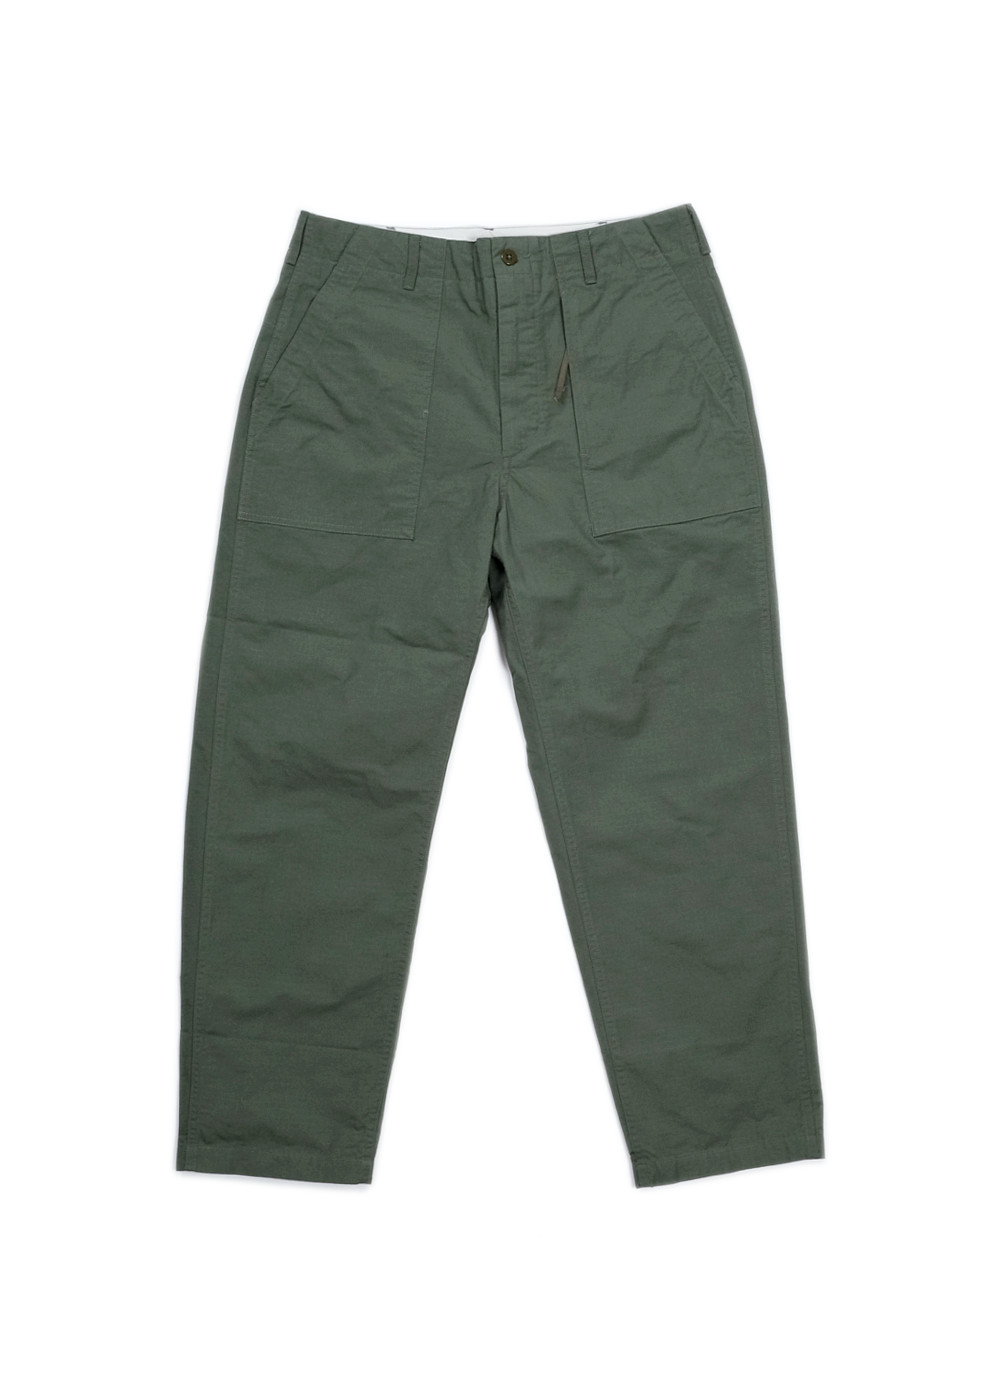 Engineered-Garments-Fatigue-Pant-Olive-Cotton-Ripstop-01